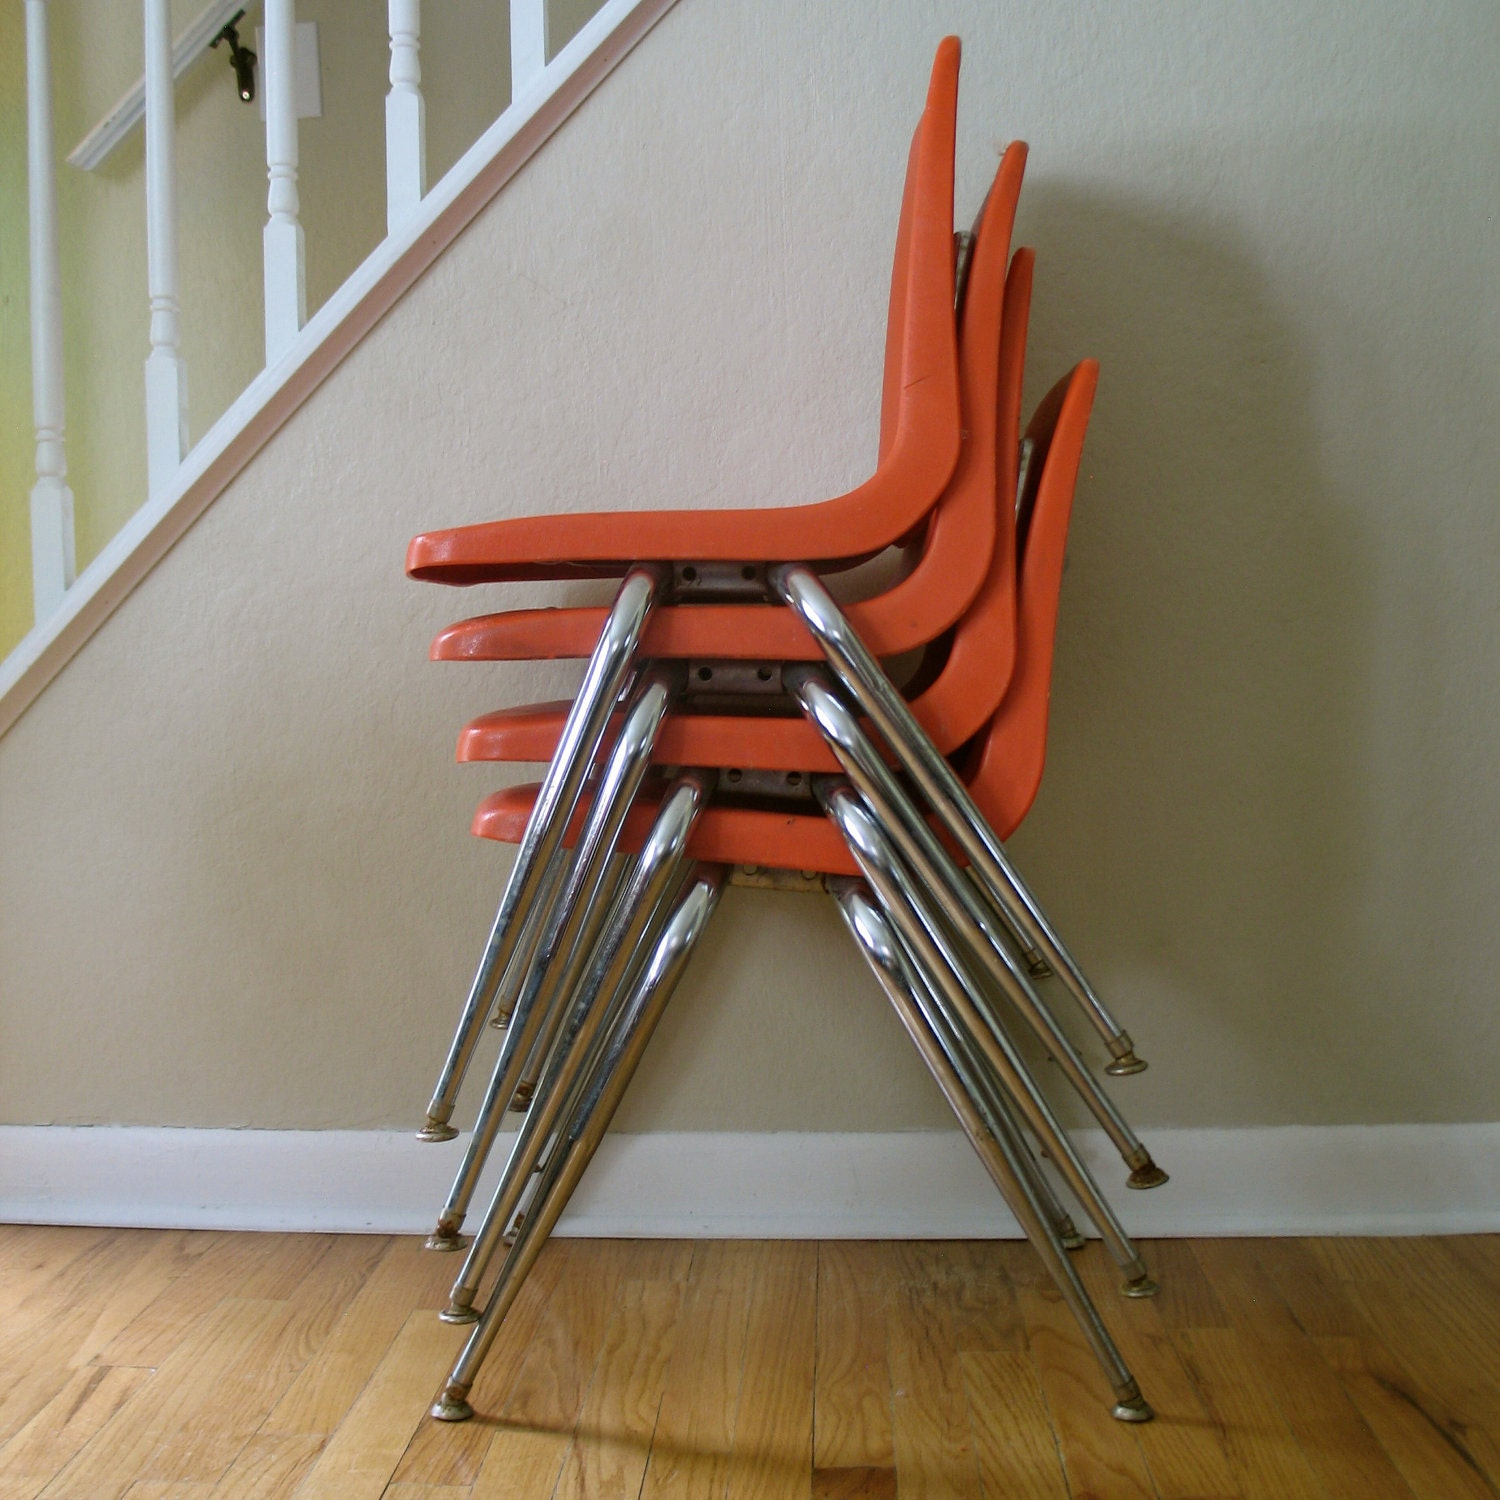 Vintage Orange Virco Set of School Chairs